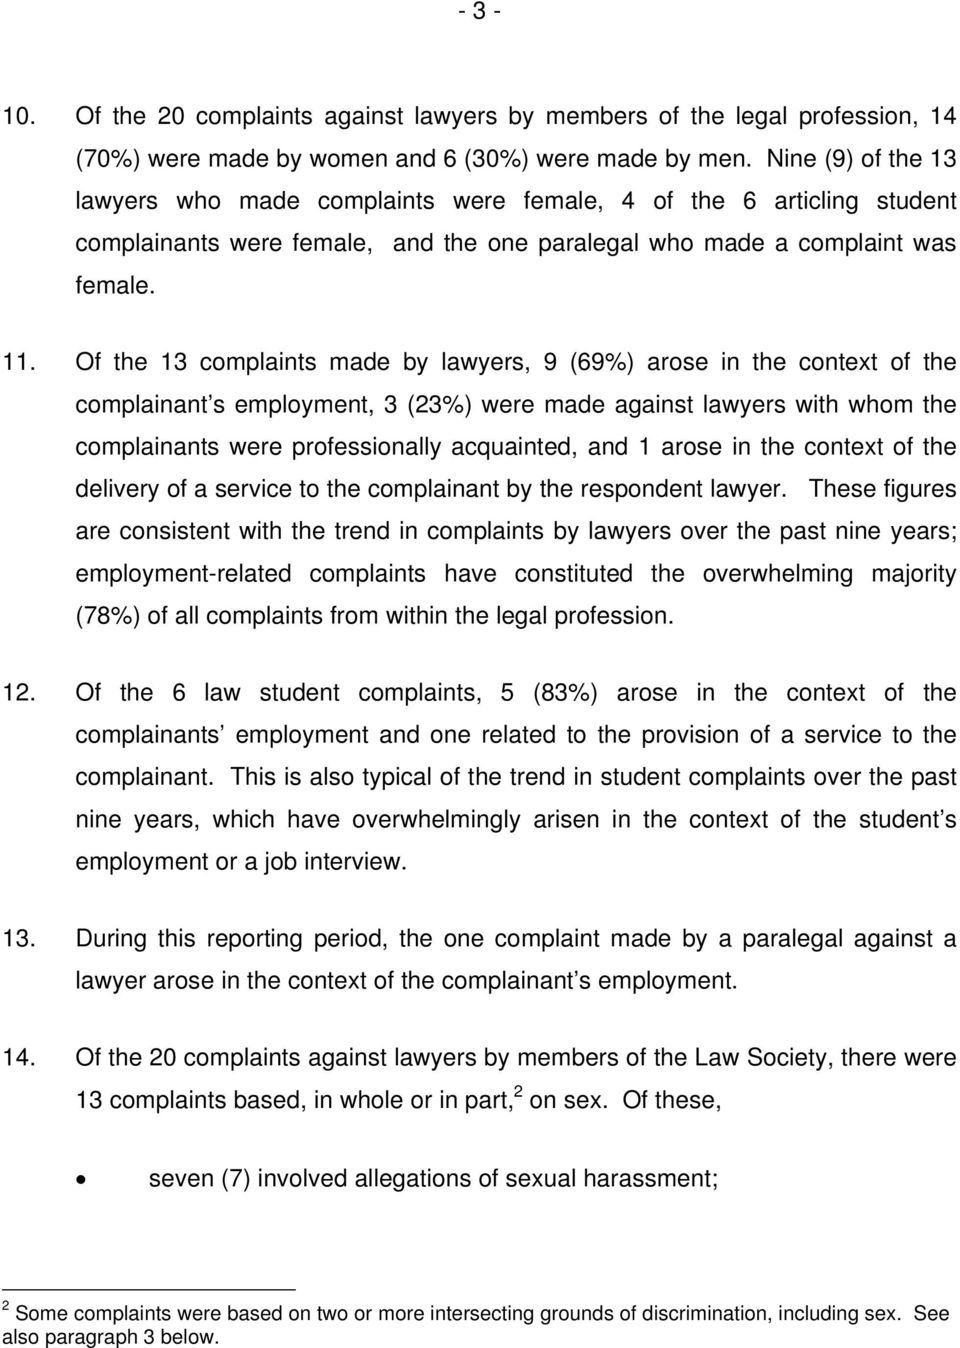 Of the 13 complaints made by lawyers, 9 (69%) arose in the context of the complainant s employment, 3 (23%) were made against lawyers with whom the complainants were professionally acquainted, and 1